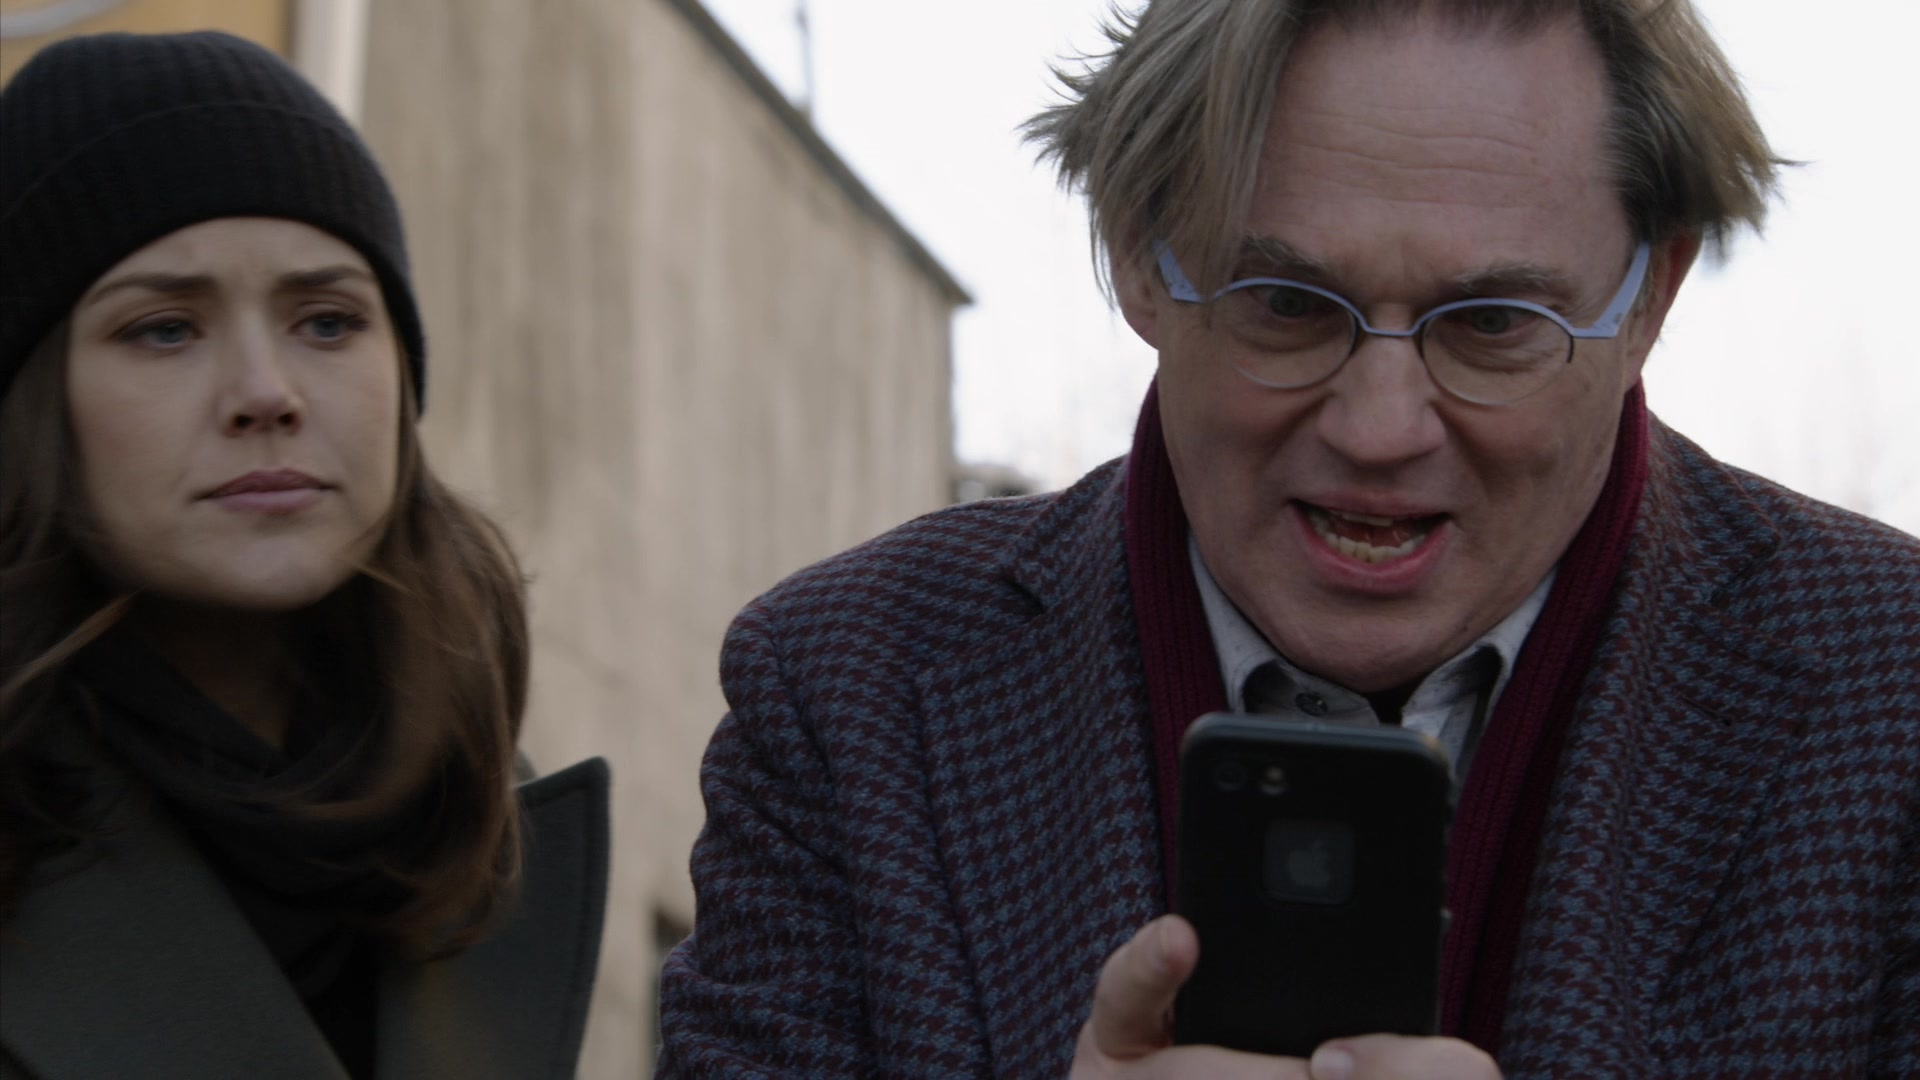 Apple iPhone Smartphone in The Blacklist - Season 6, Episode 17, The